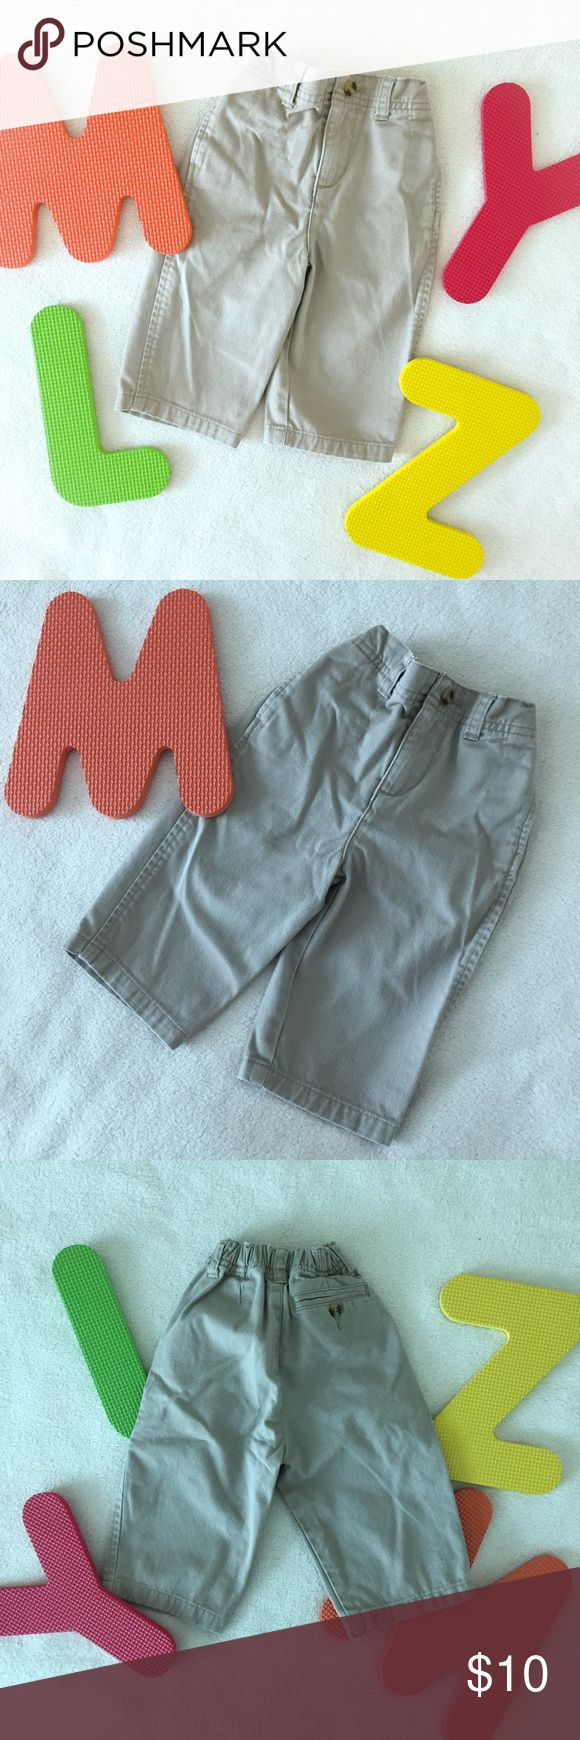 Nordstrom Kaki Pants Nordstrom kaki pants. Gently worn in good condition. 100% cotton. 9 months. From a smoke pet free home. Bundle & Save! Take a look at my closet! Nordstrom Bottoms Casual